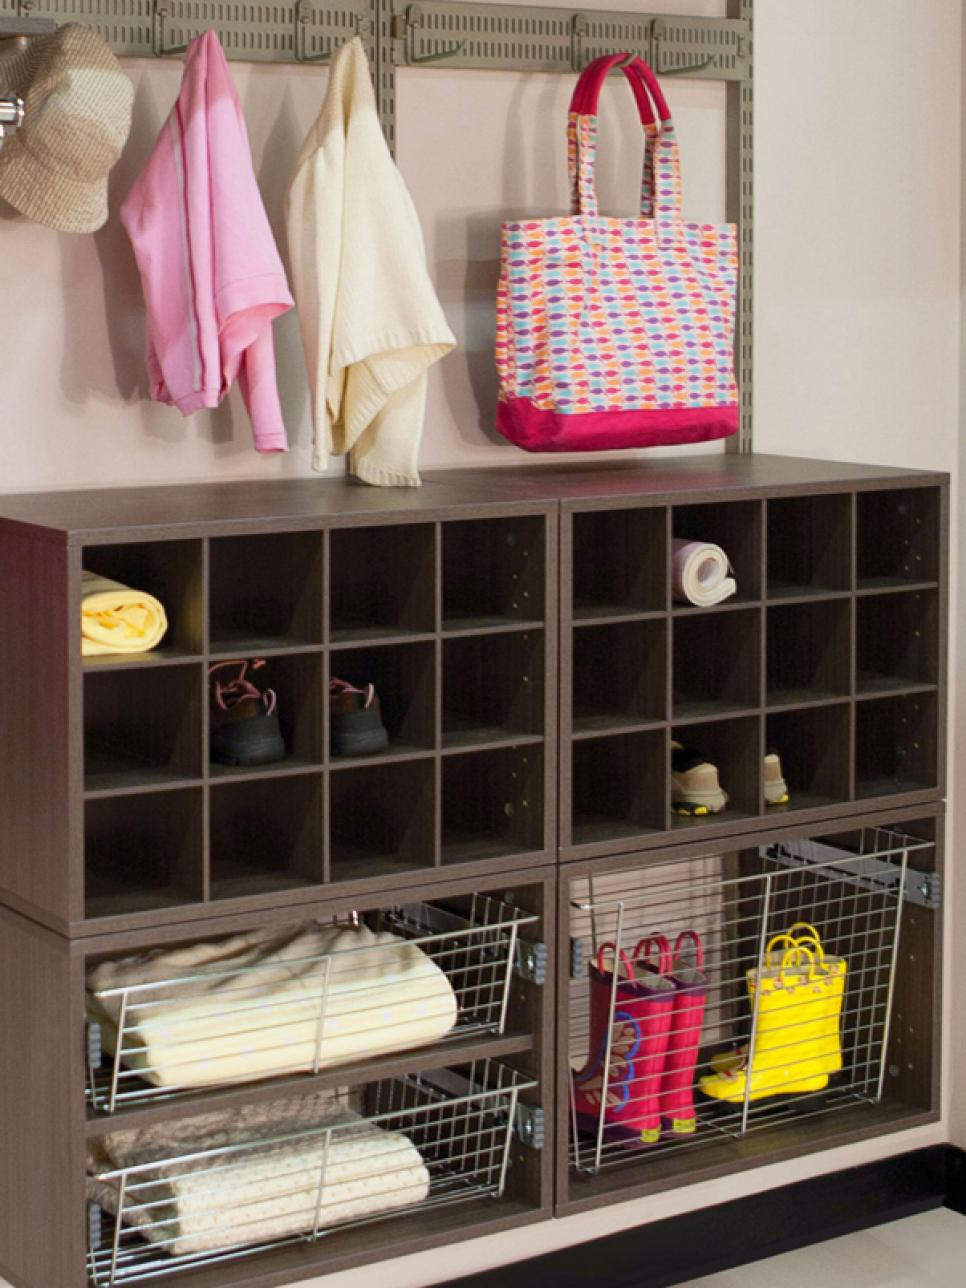 Mudroom storage ideas hgtv Living room shoe storage ideas